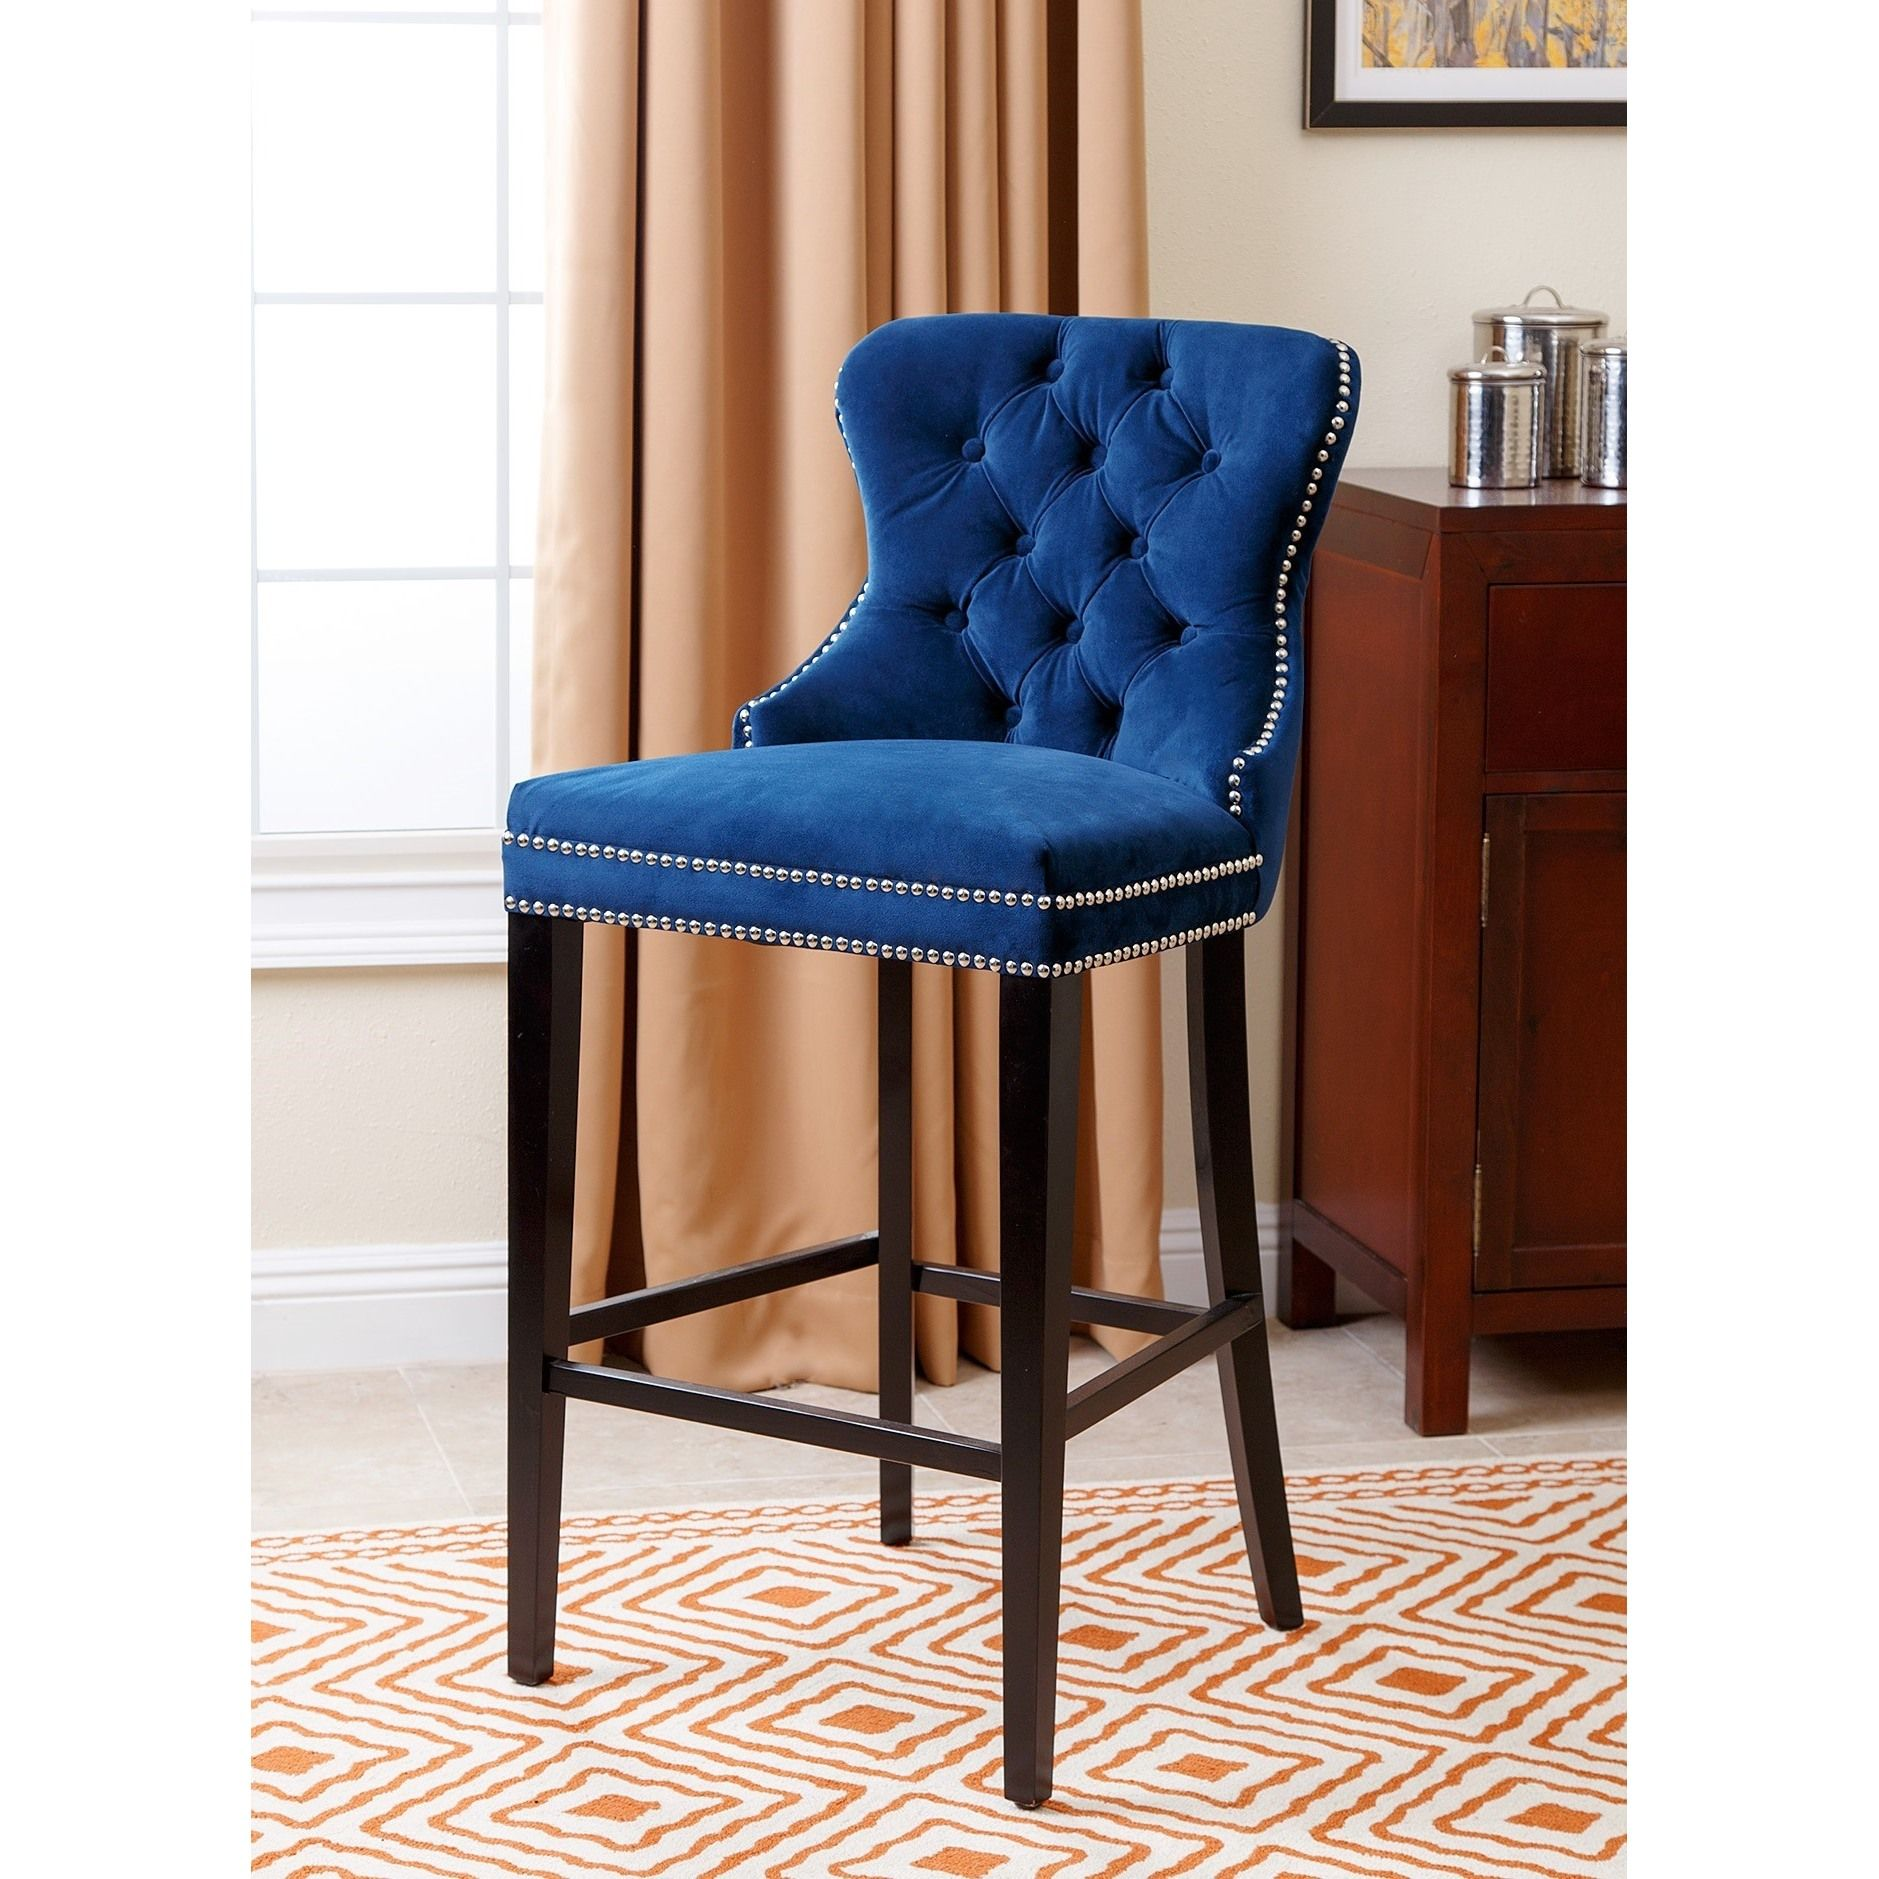 Abbyson Versailles 30 Inch Navy Blue Tufted Bar Stool Upholstered Bar Stools Abbyson Living Bar Stools